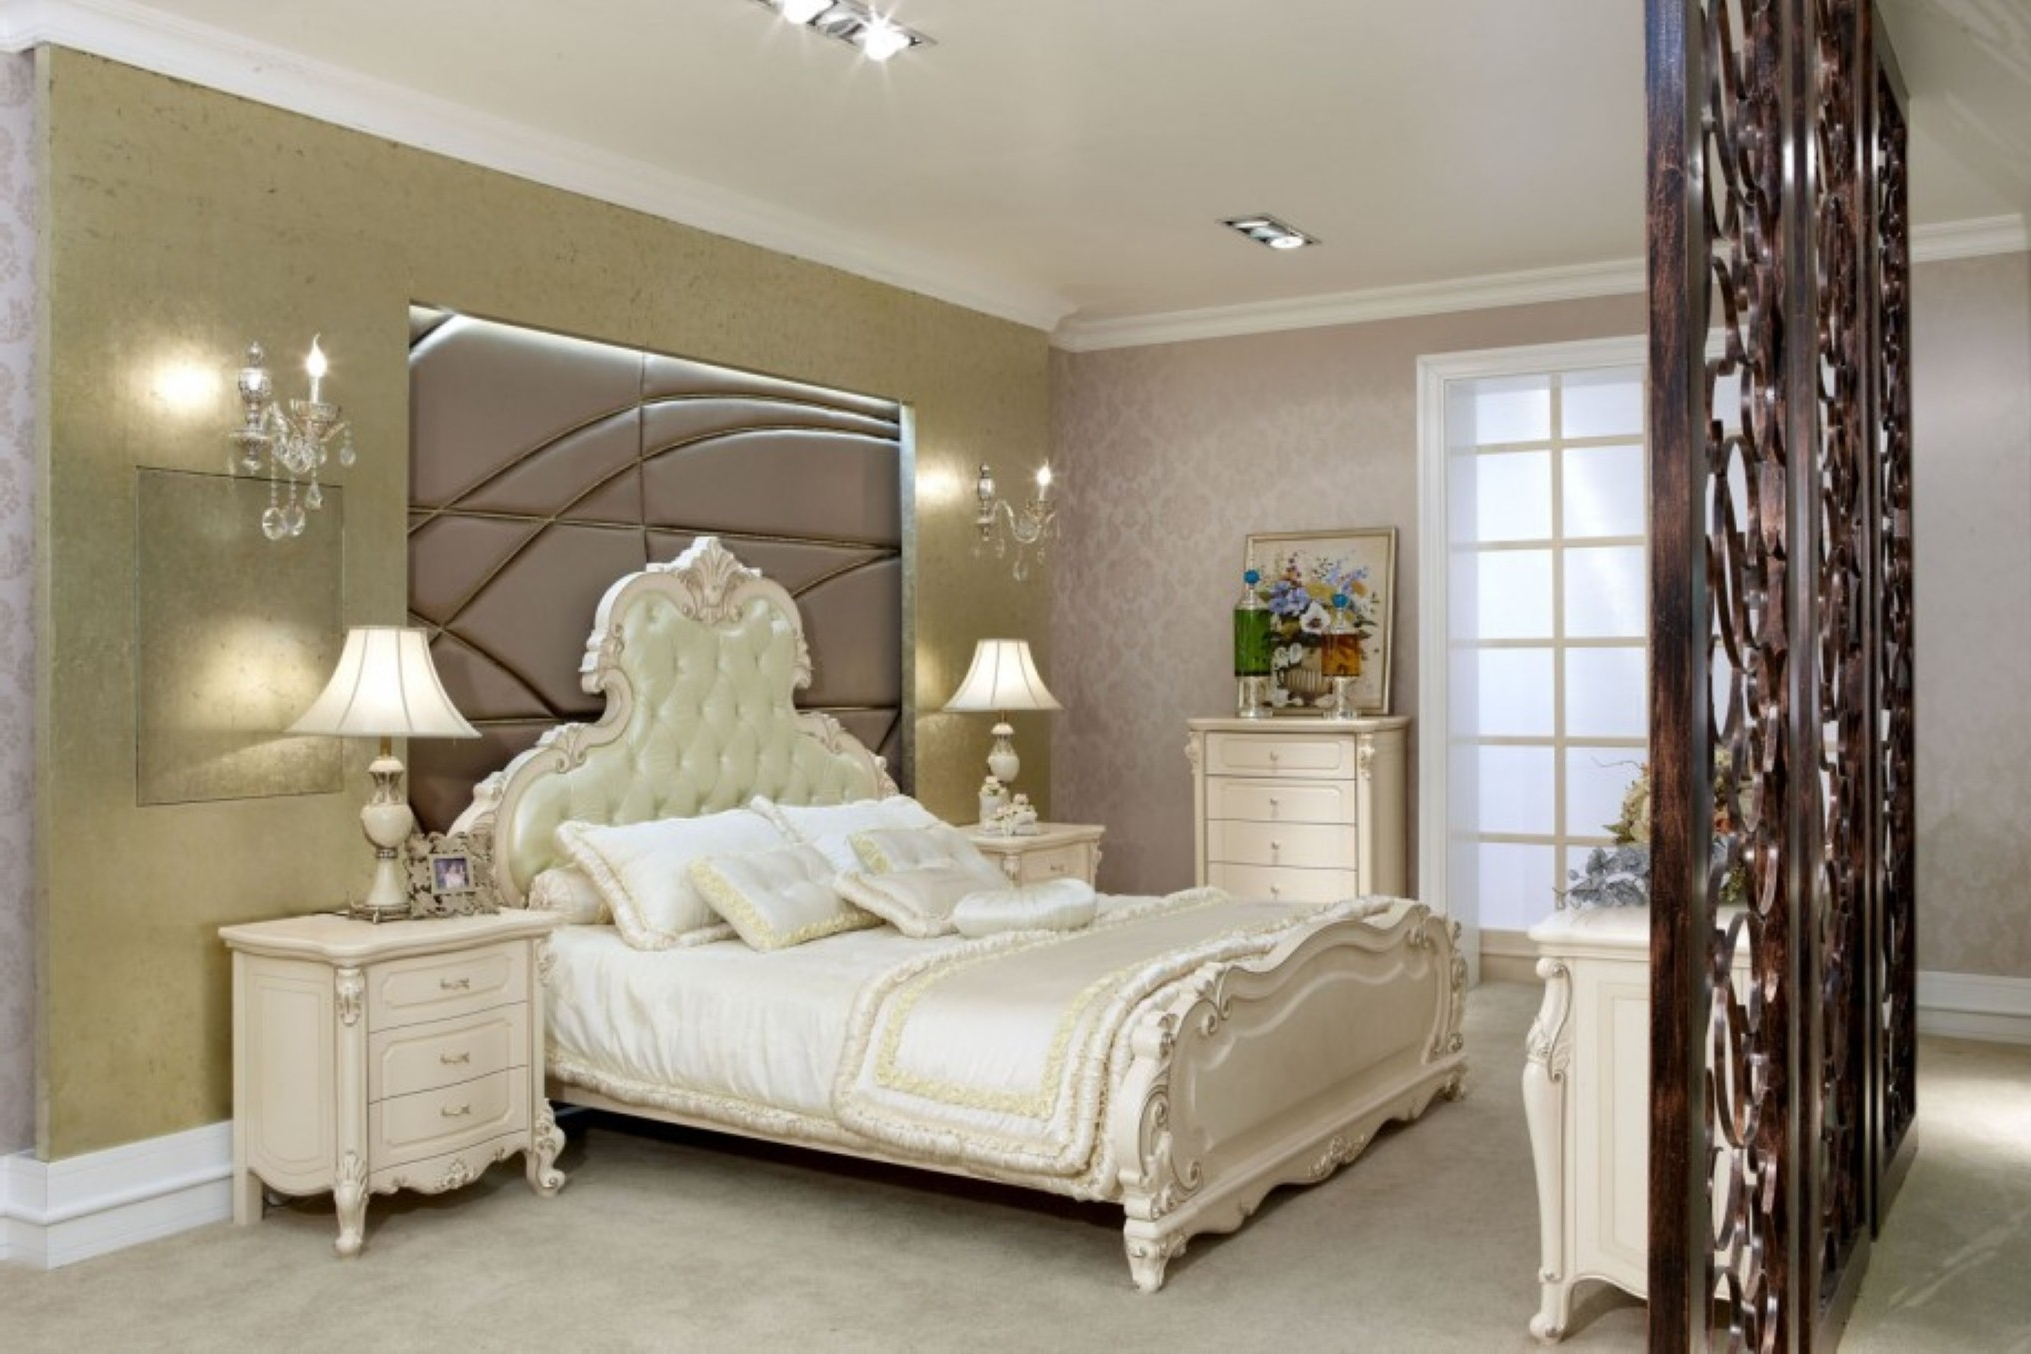 Neat Inspirational Cream Furniture As Fitted Bedroom Furniture For Divine Design Ideas Of Great Creation With Innovative Bedroom (View 20 of 21)